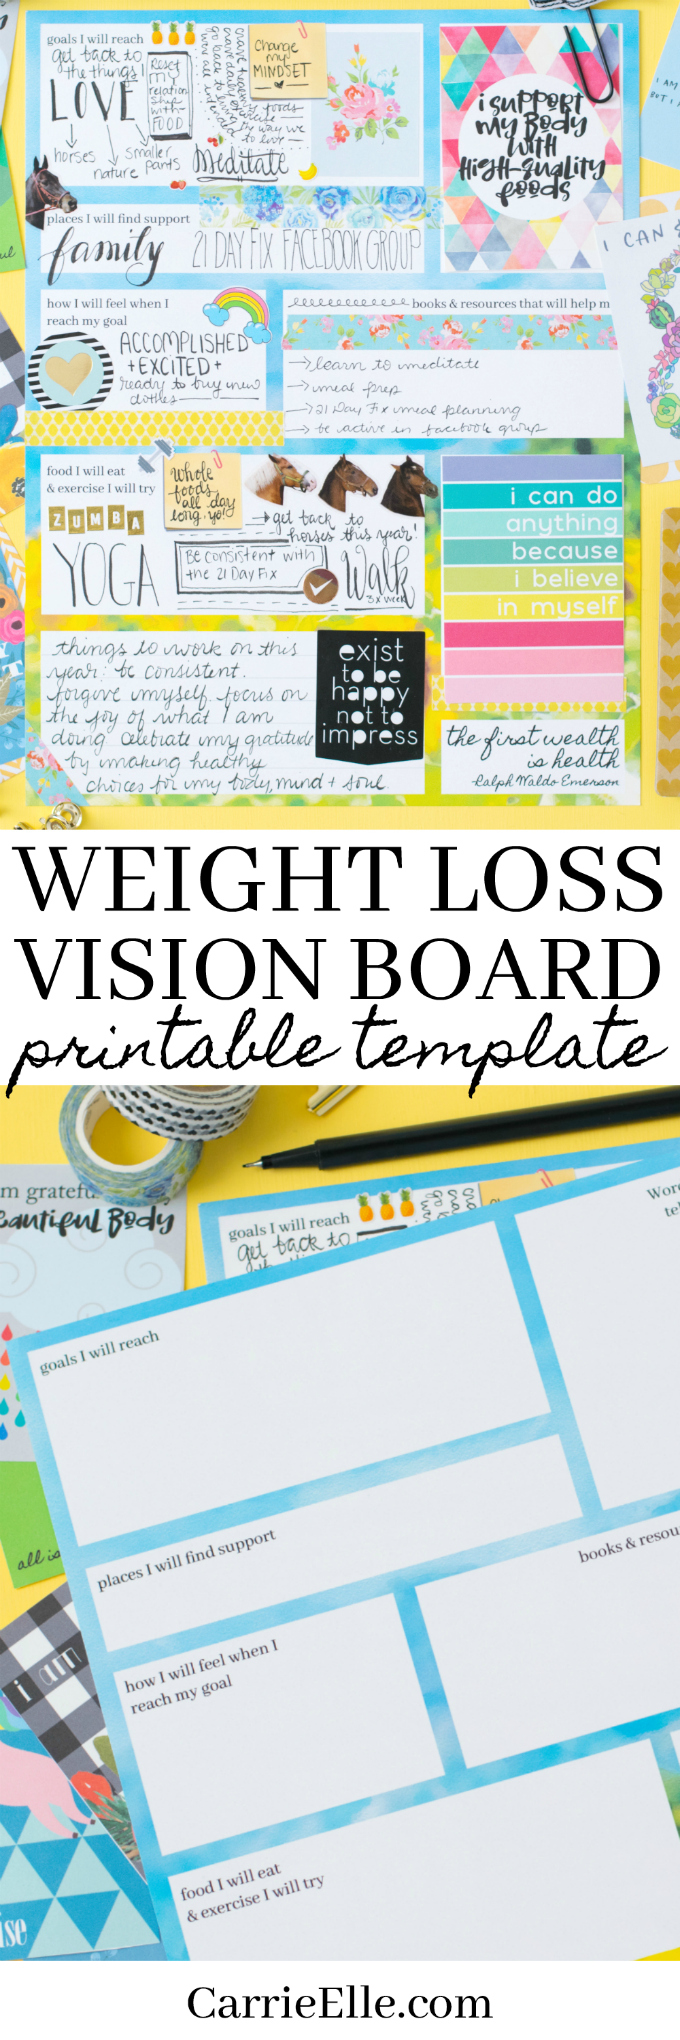 Weight Loss Board : weight, board, Printable, Weight, Vision, Board, Template, Carrie